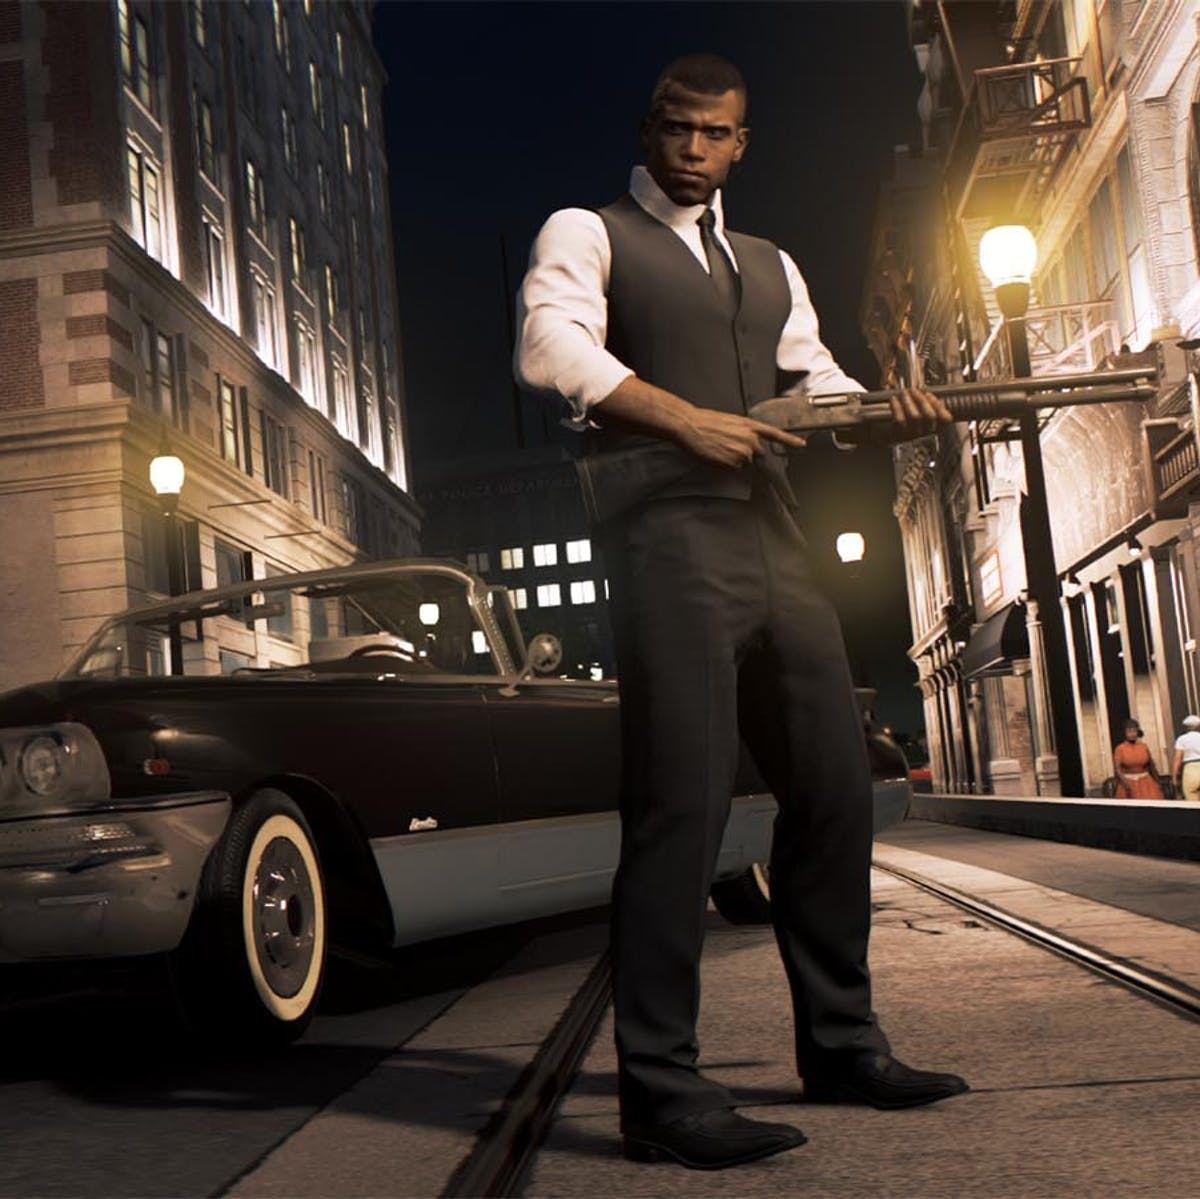 'Mafia 4' for next-gen consoles may fill the 'GTA'-sized hole in your heart